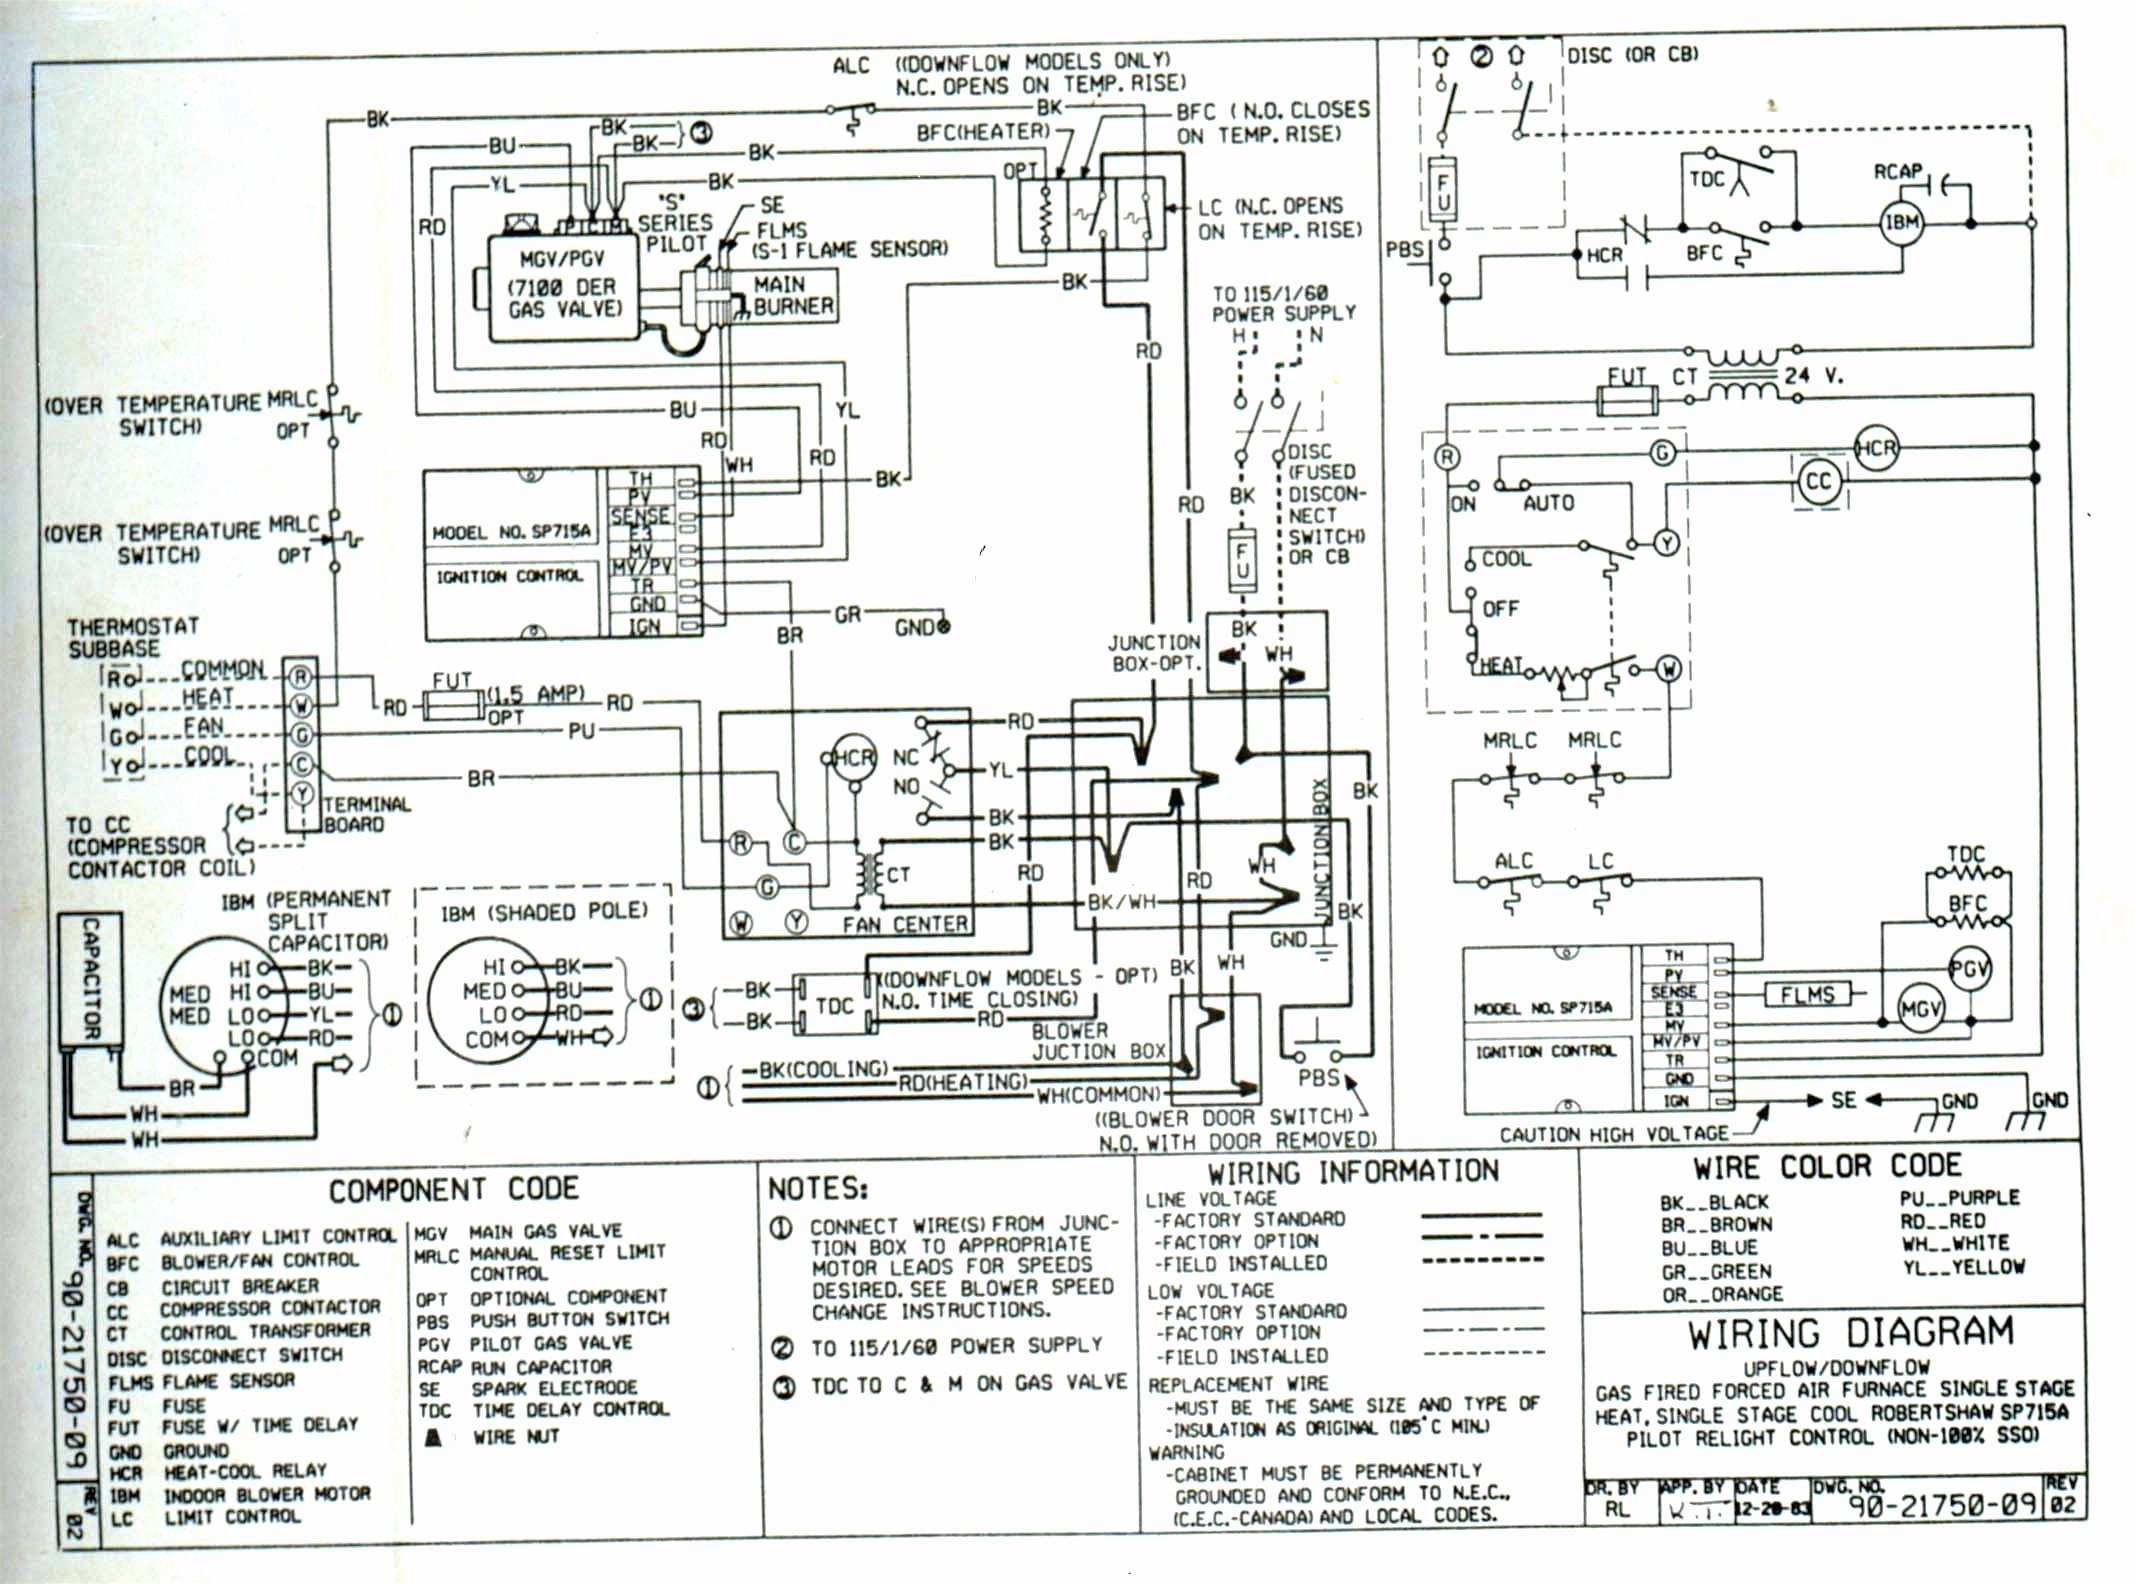 dayton ac motor wiring diagram 2866 3 phase dayton gear motor wiring diagram my wiring diagram dayton gear motor wiring diagram